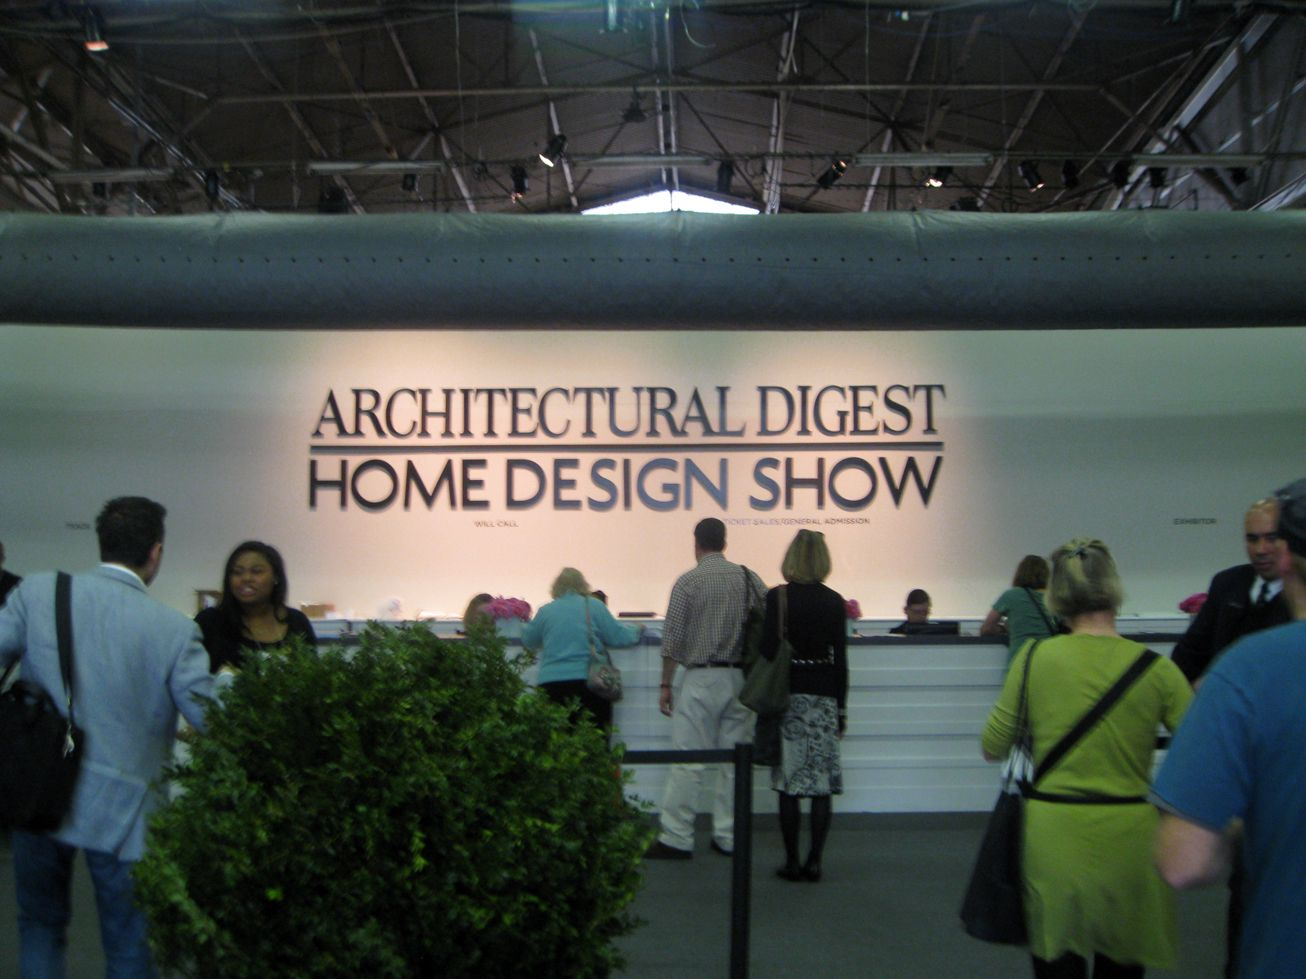 architectural digest home design show 2015 new york 2015 inner circle lounge design of ja new york winter show